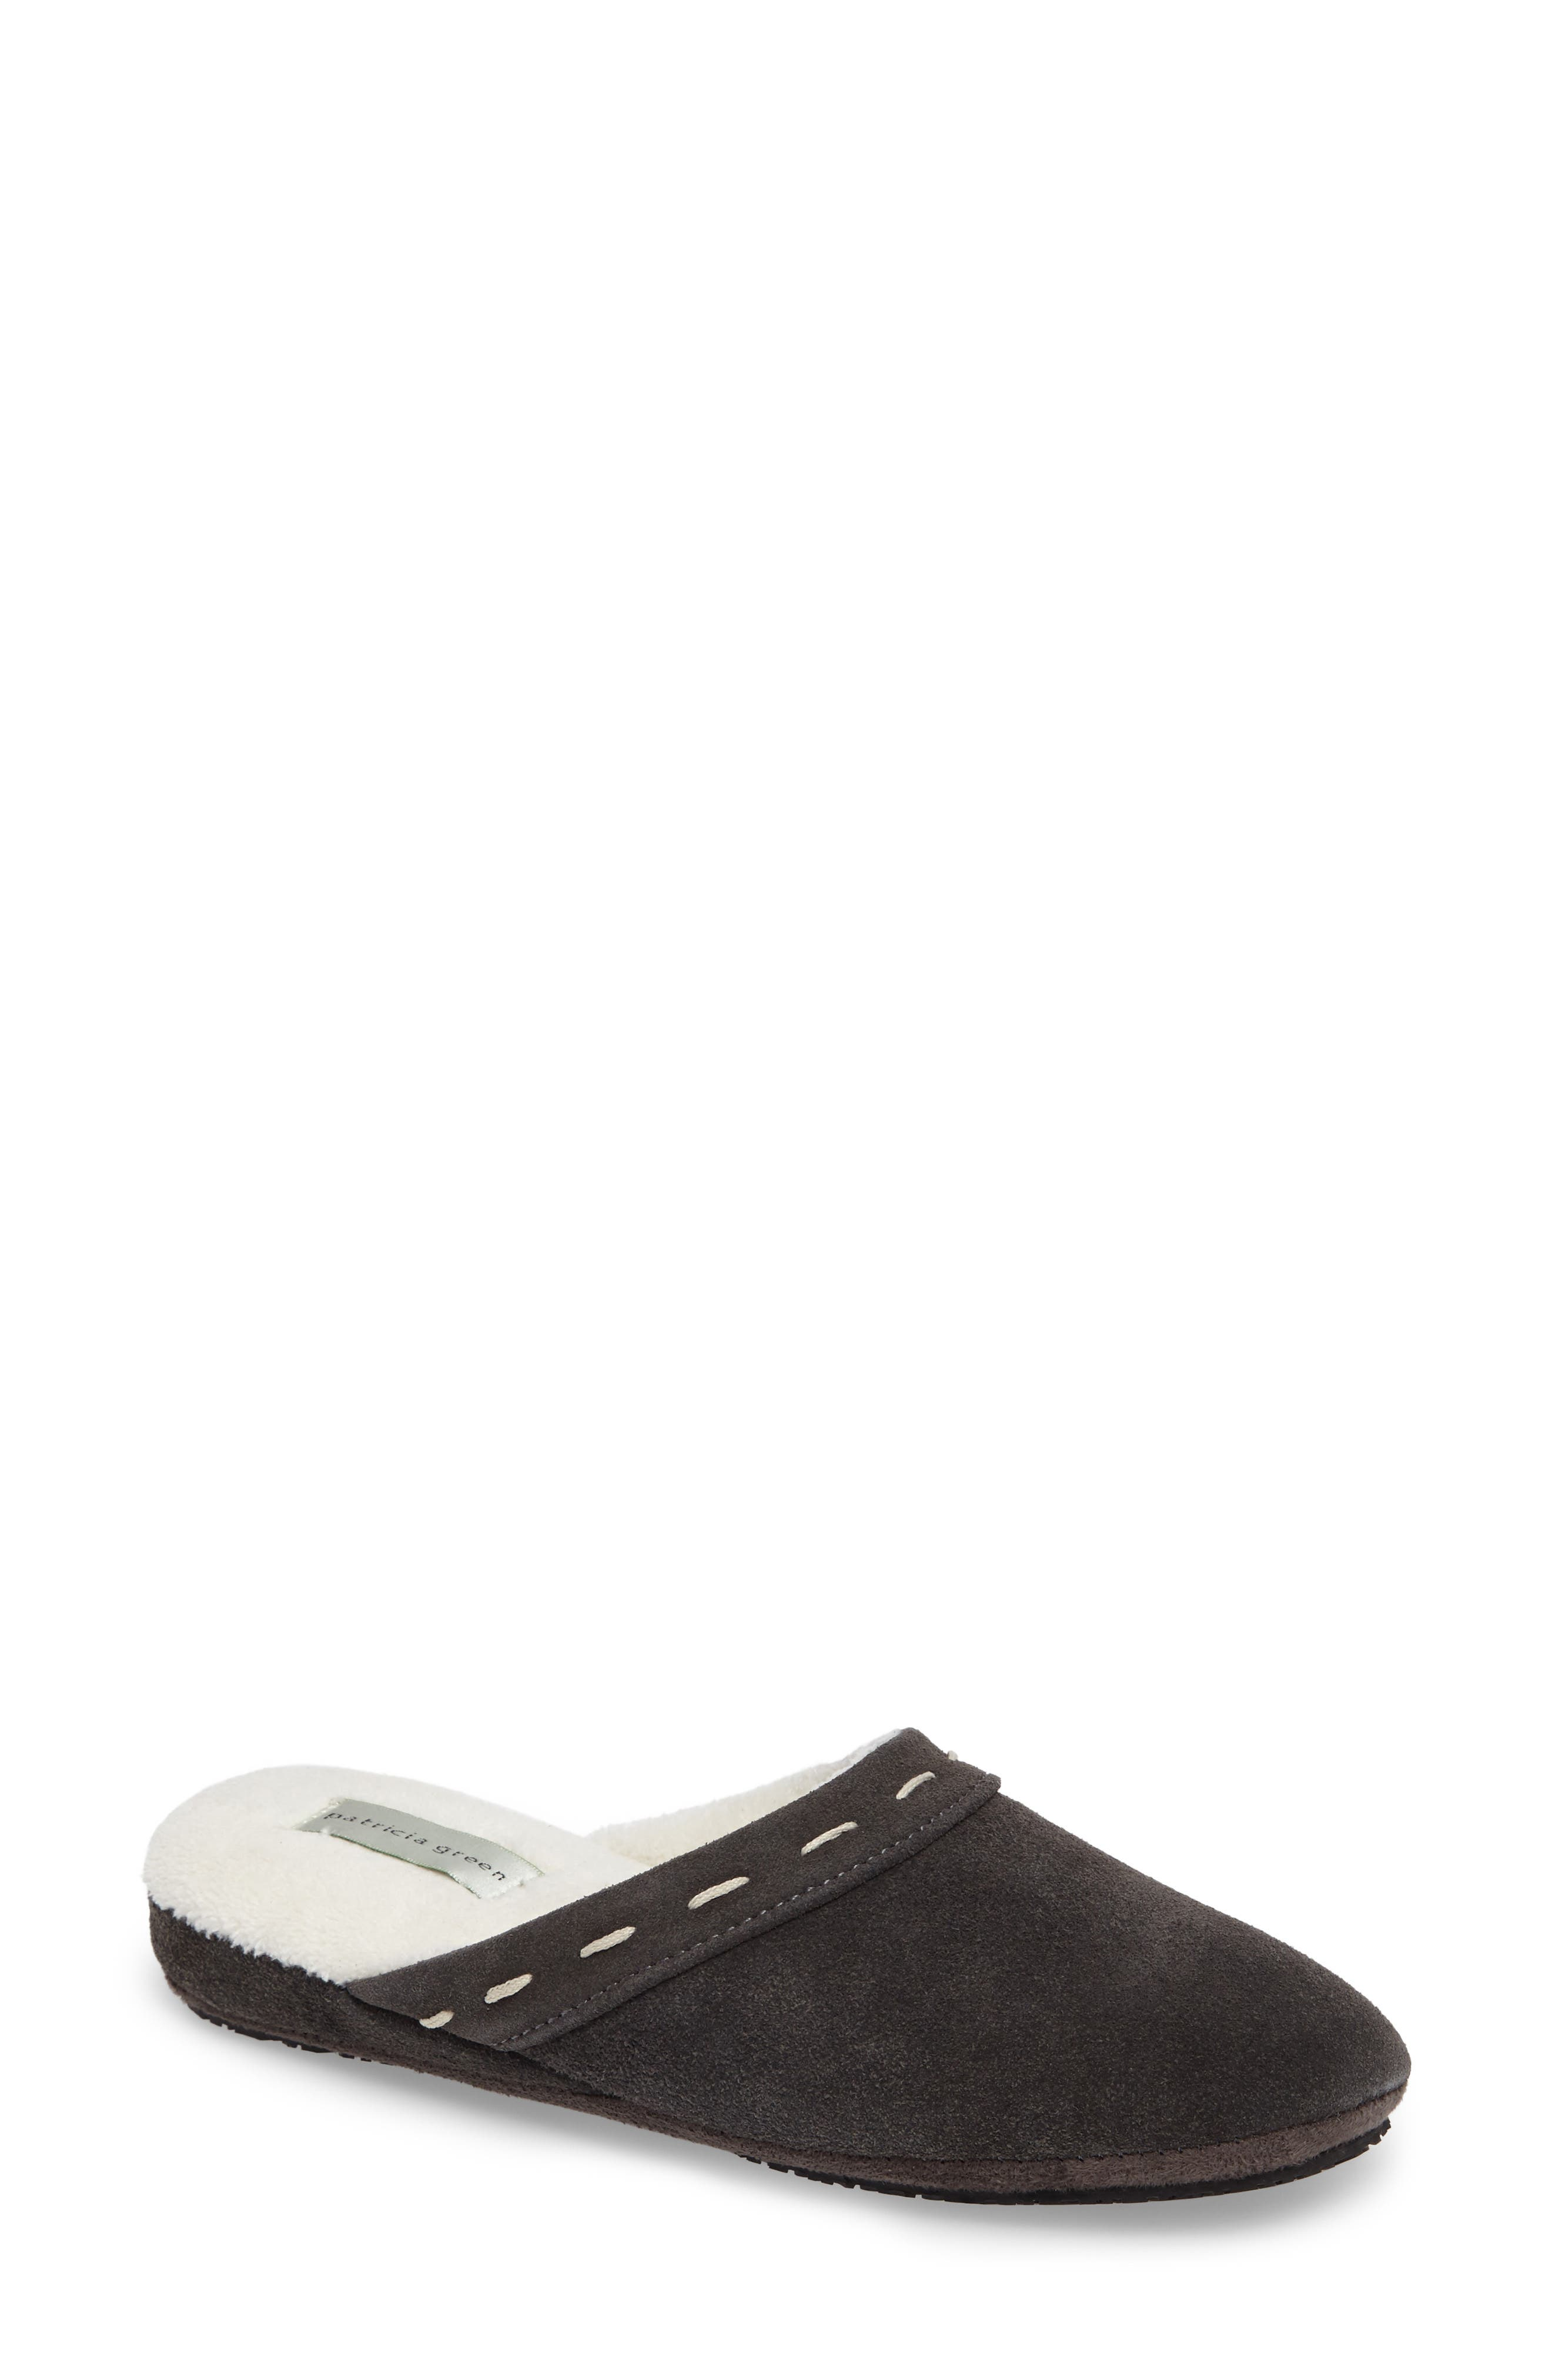 Mayfair Wedge Slipper,                         Main,                         color, CHARCOAL SUEDE